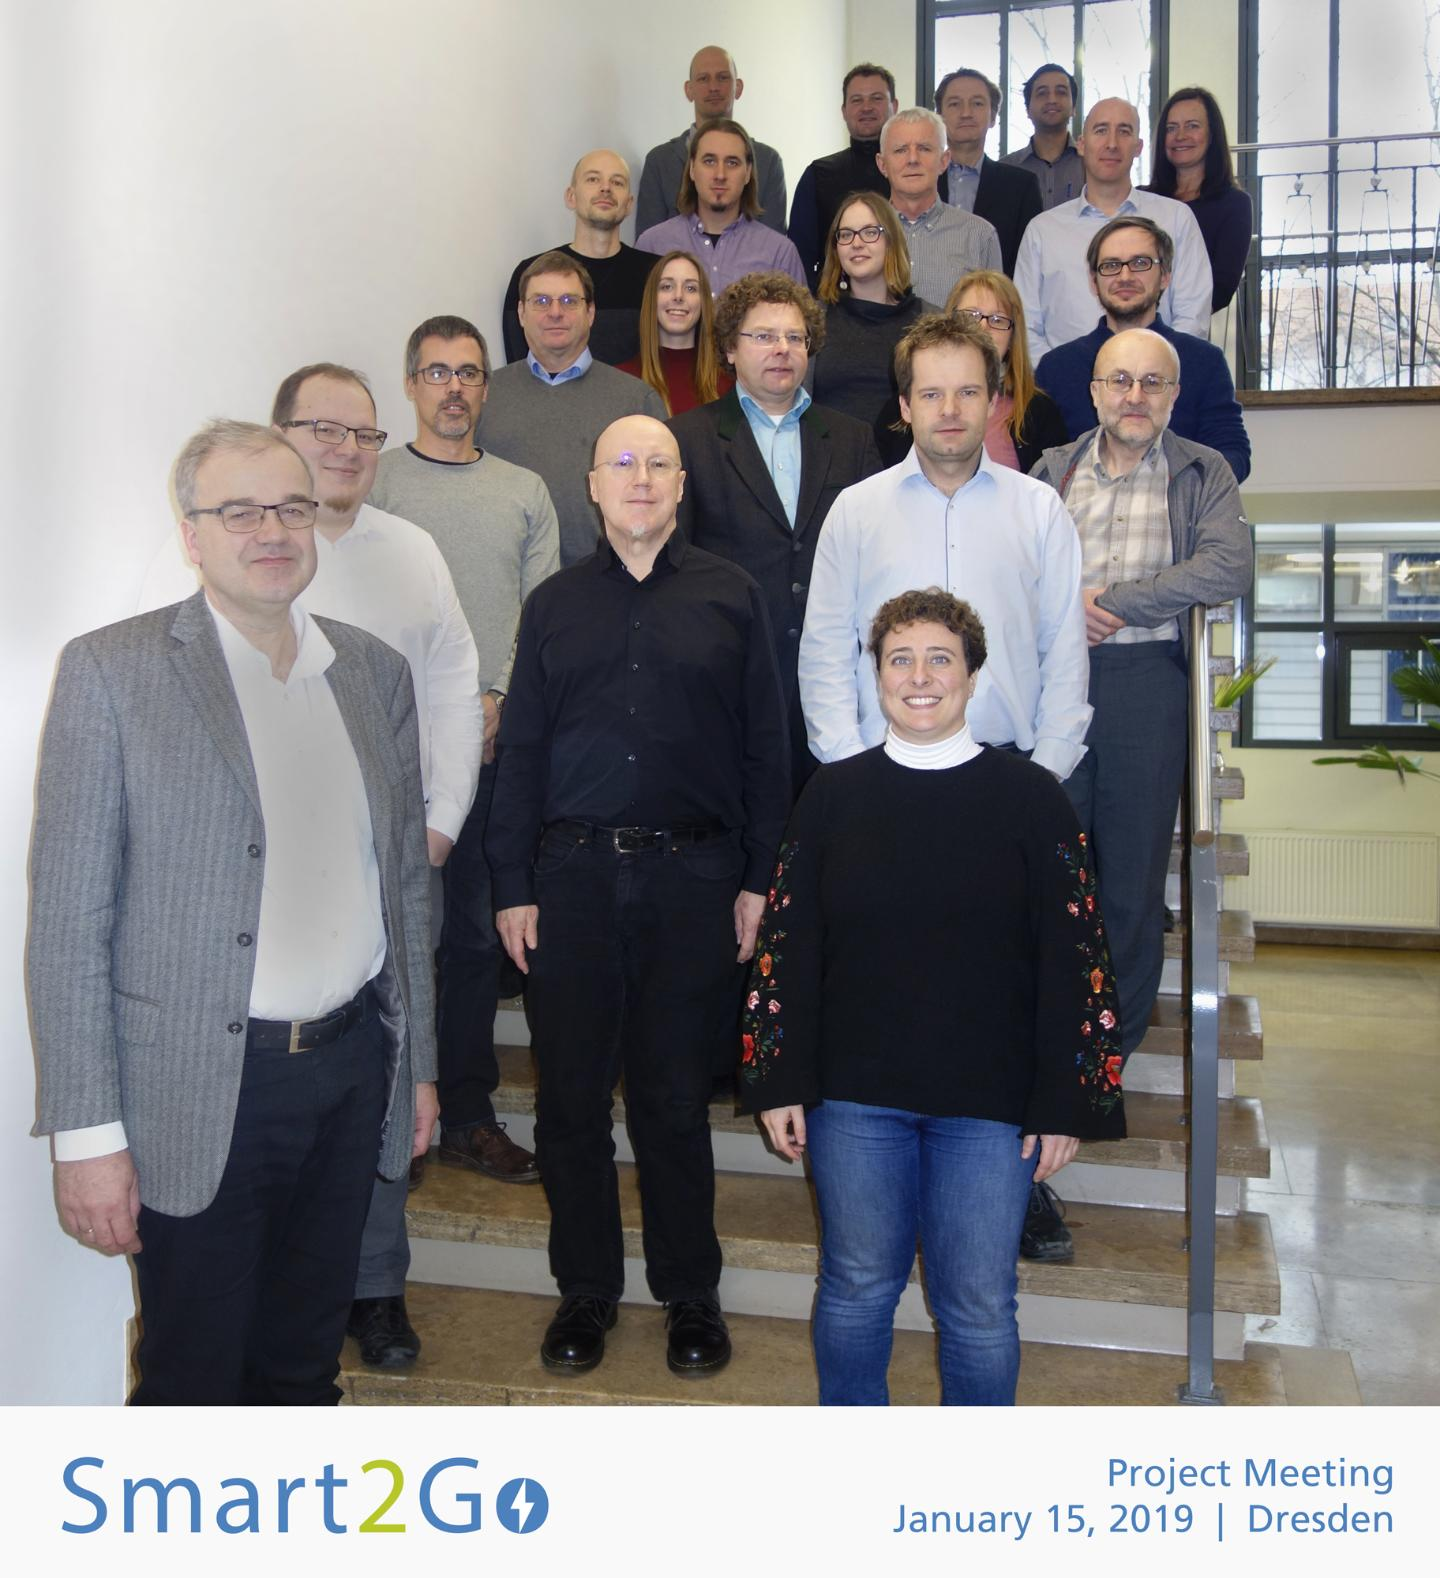 Smart2Go_Group photo-1440x1578.jpg